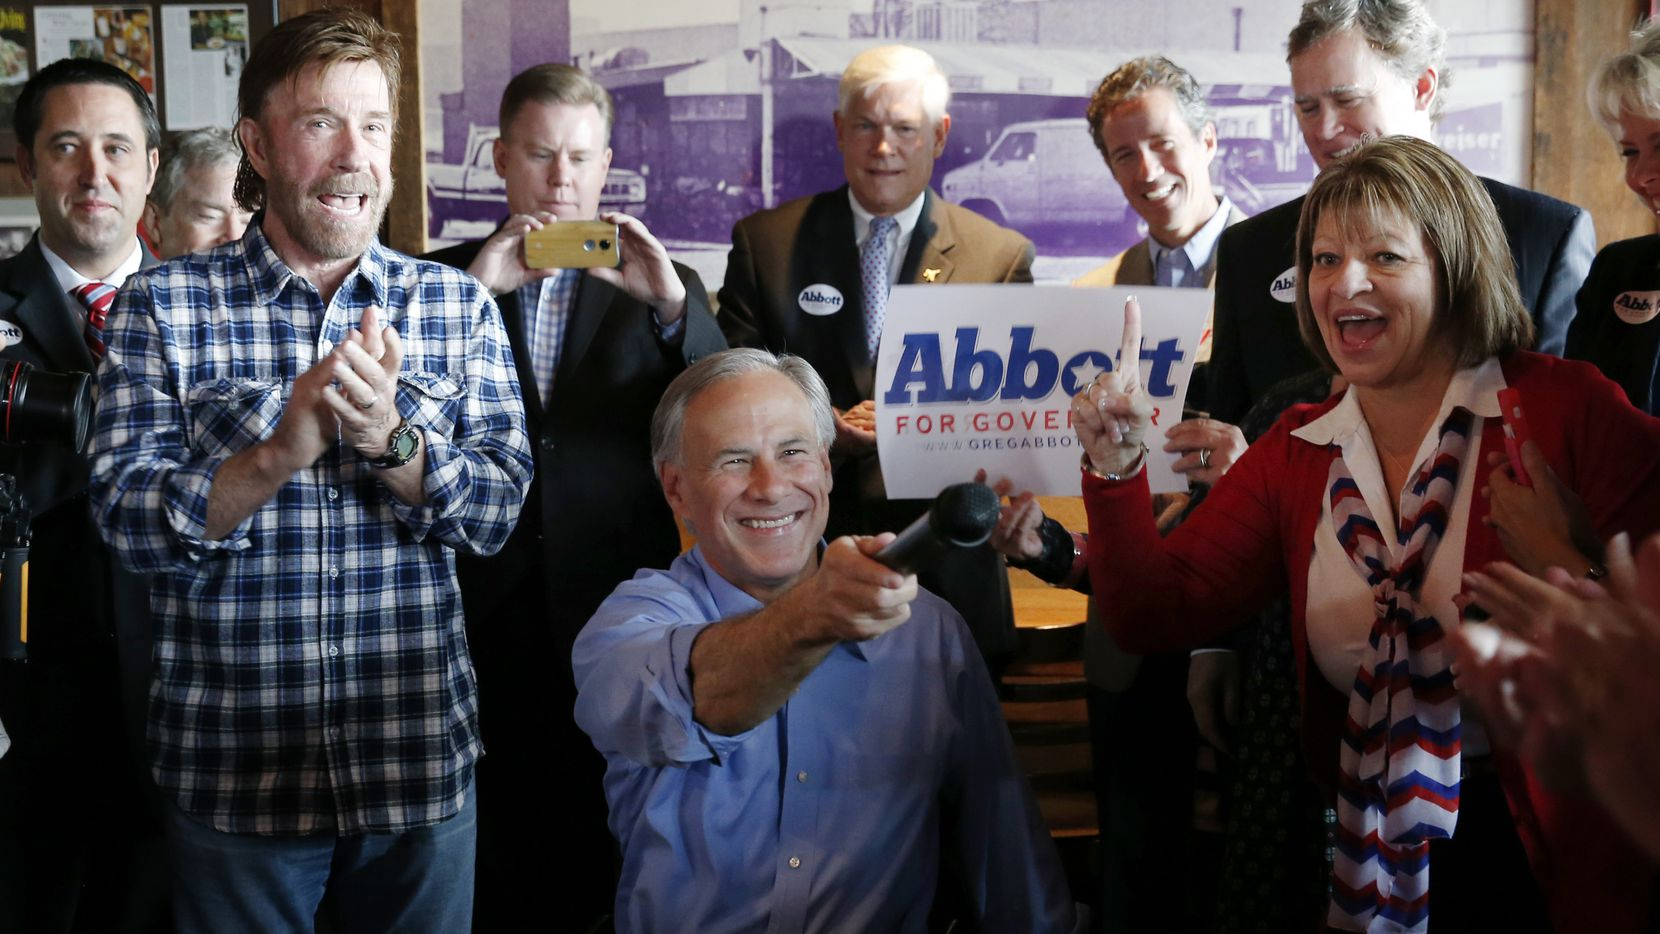 Greg Abbott, campaigning for governor with Chuck Norris (left) in Dallas in November 2014, said he doesn't see Texas breaking with the U.S. the way Britain voted to leave the European Union last week.